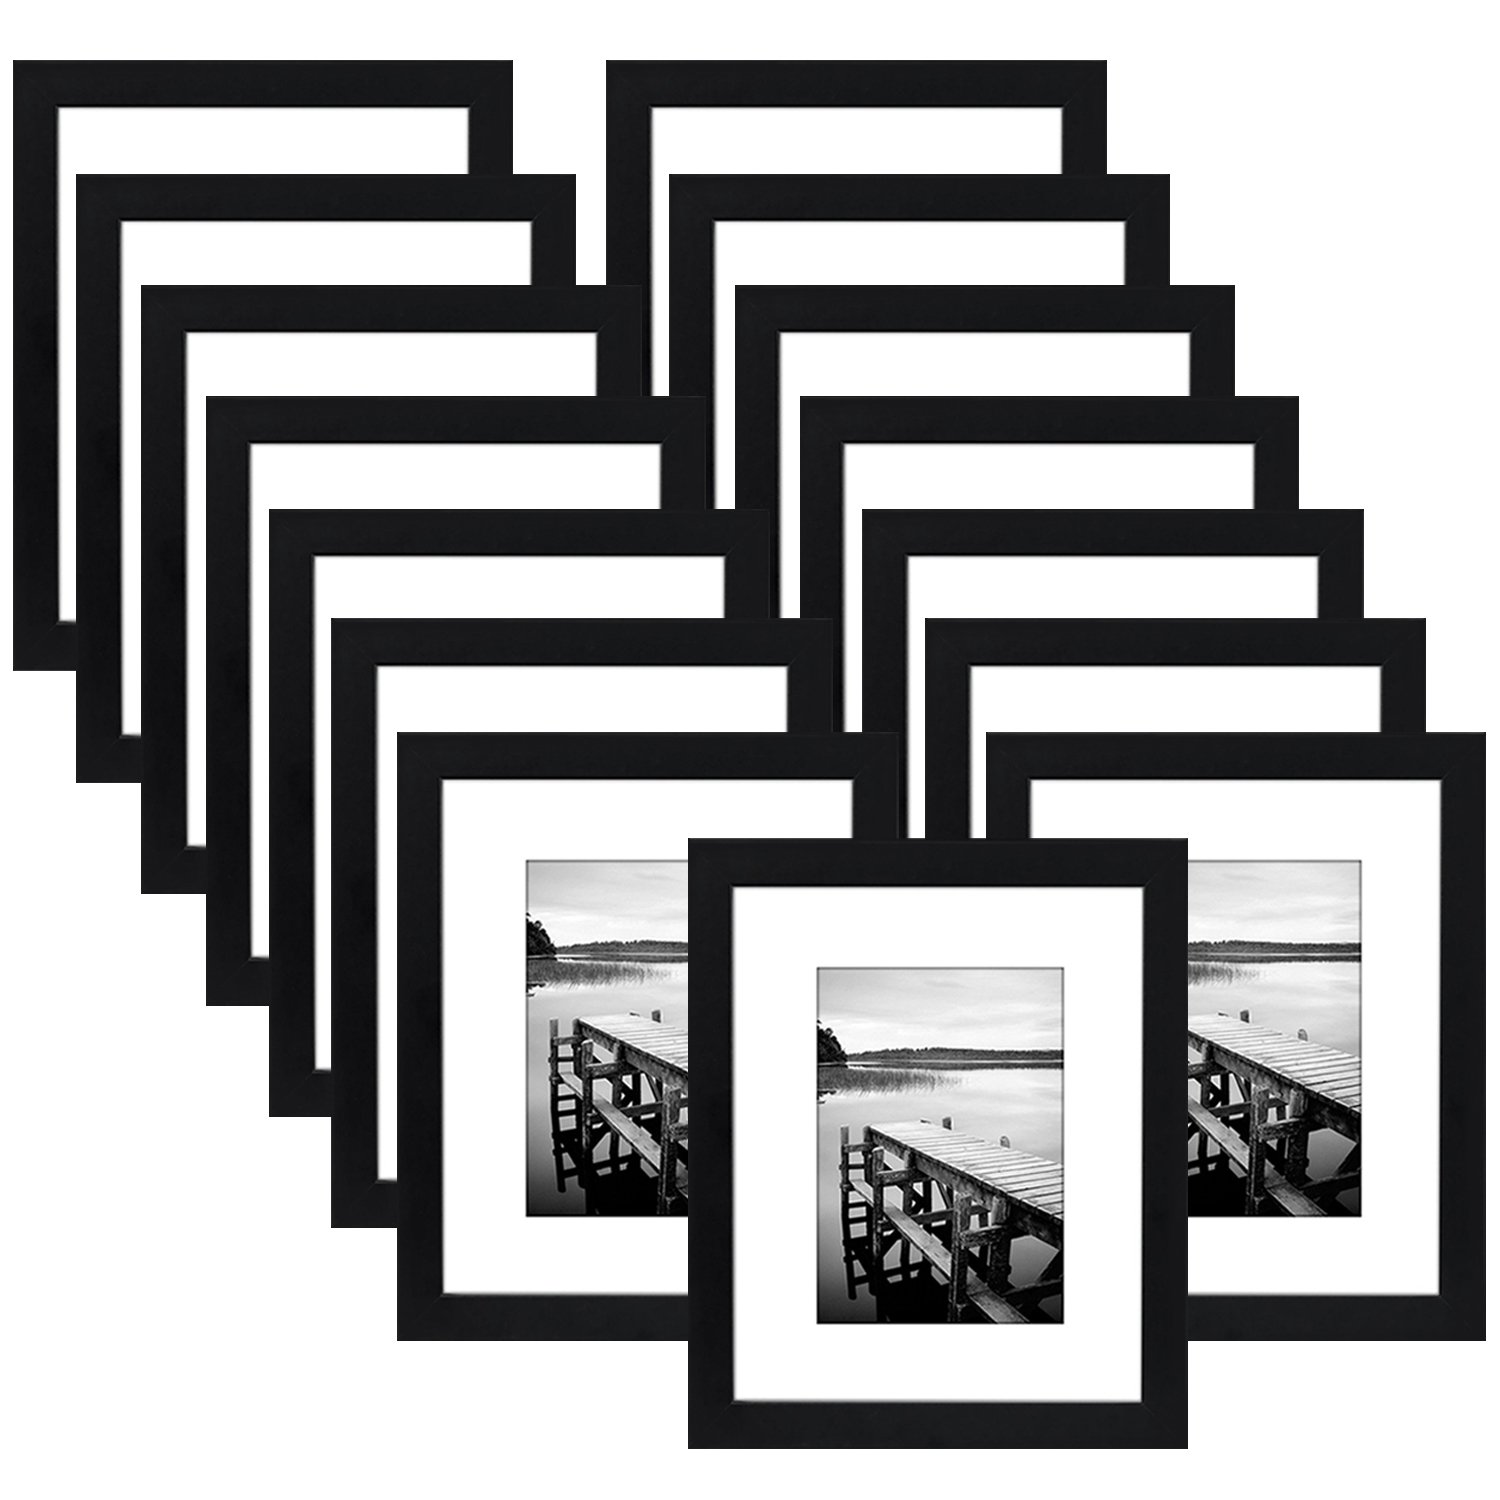 Americanflat 15 Pack - 8x10 Black Picture Frame - Made to Display Pictures 5x7 with Mat or 8x10 Without Mat